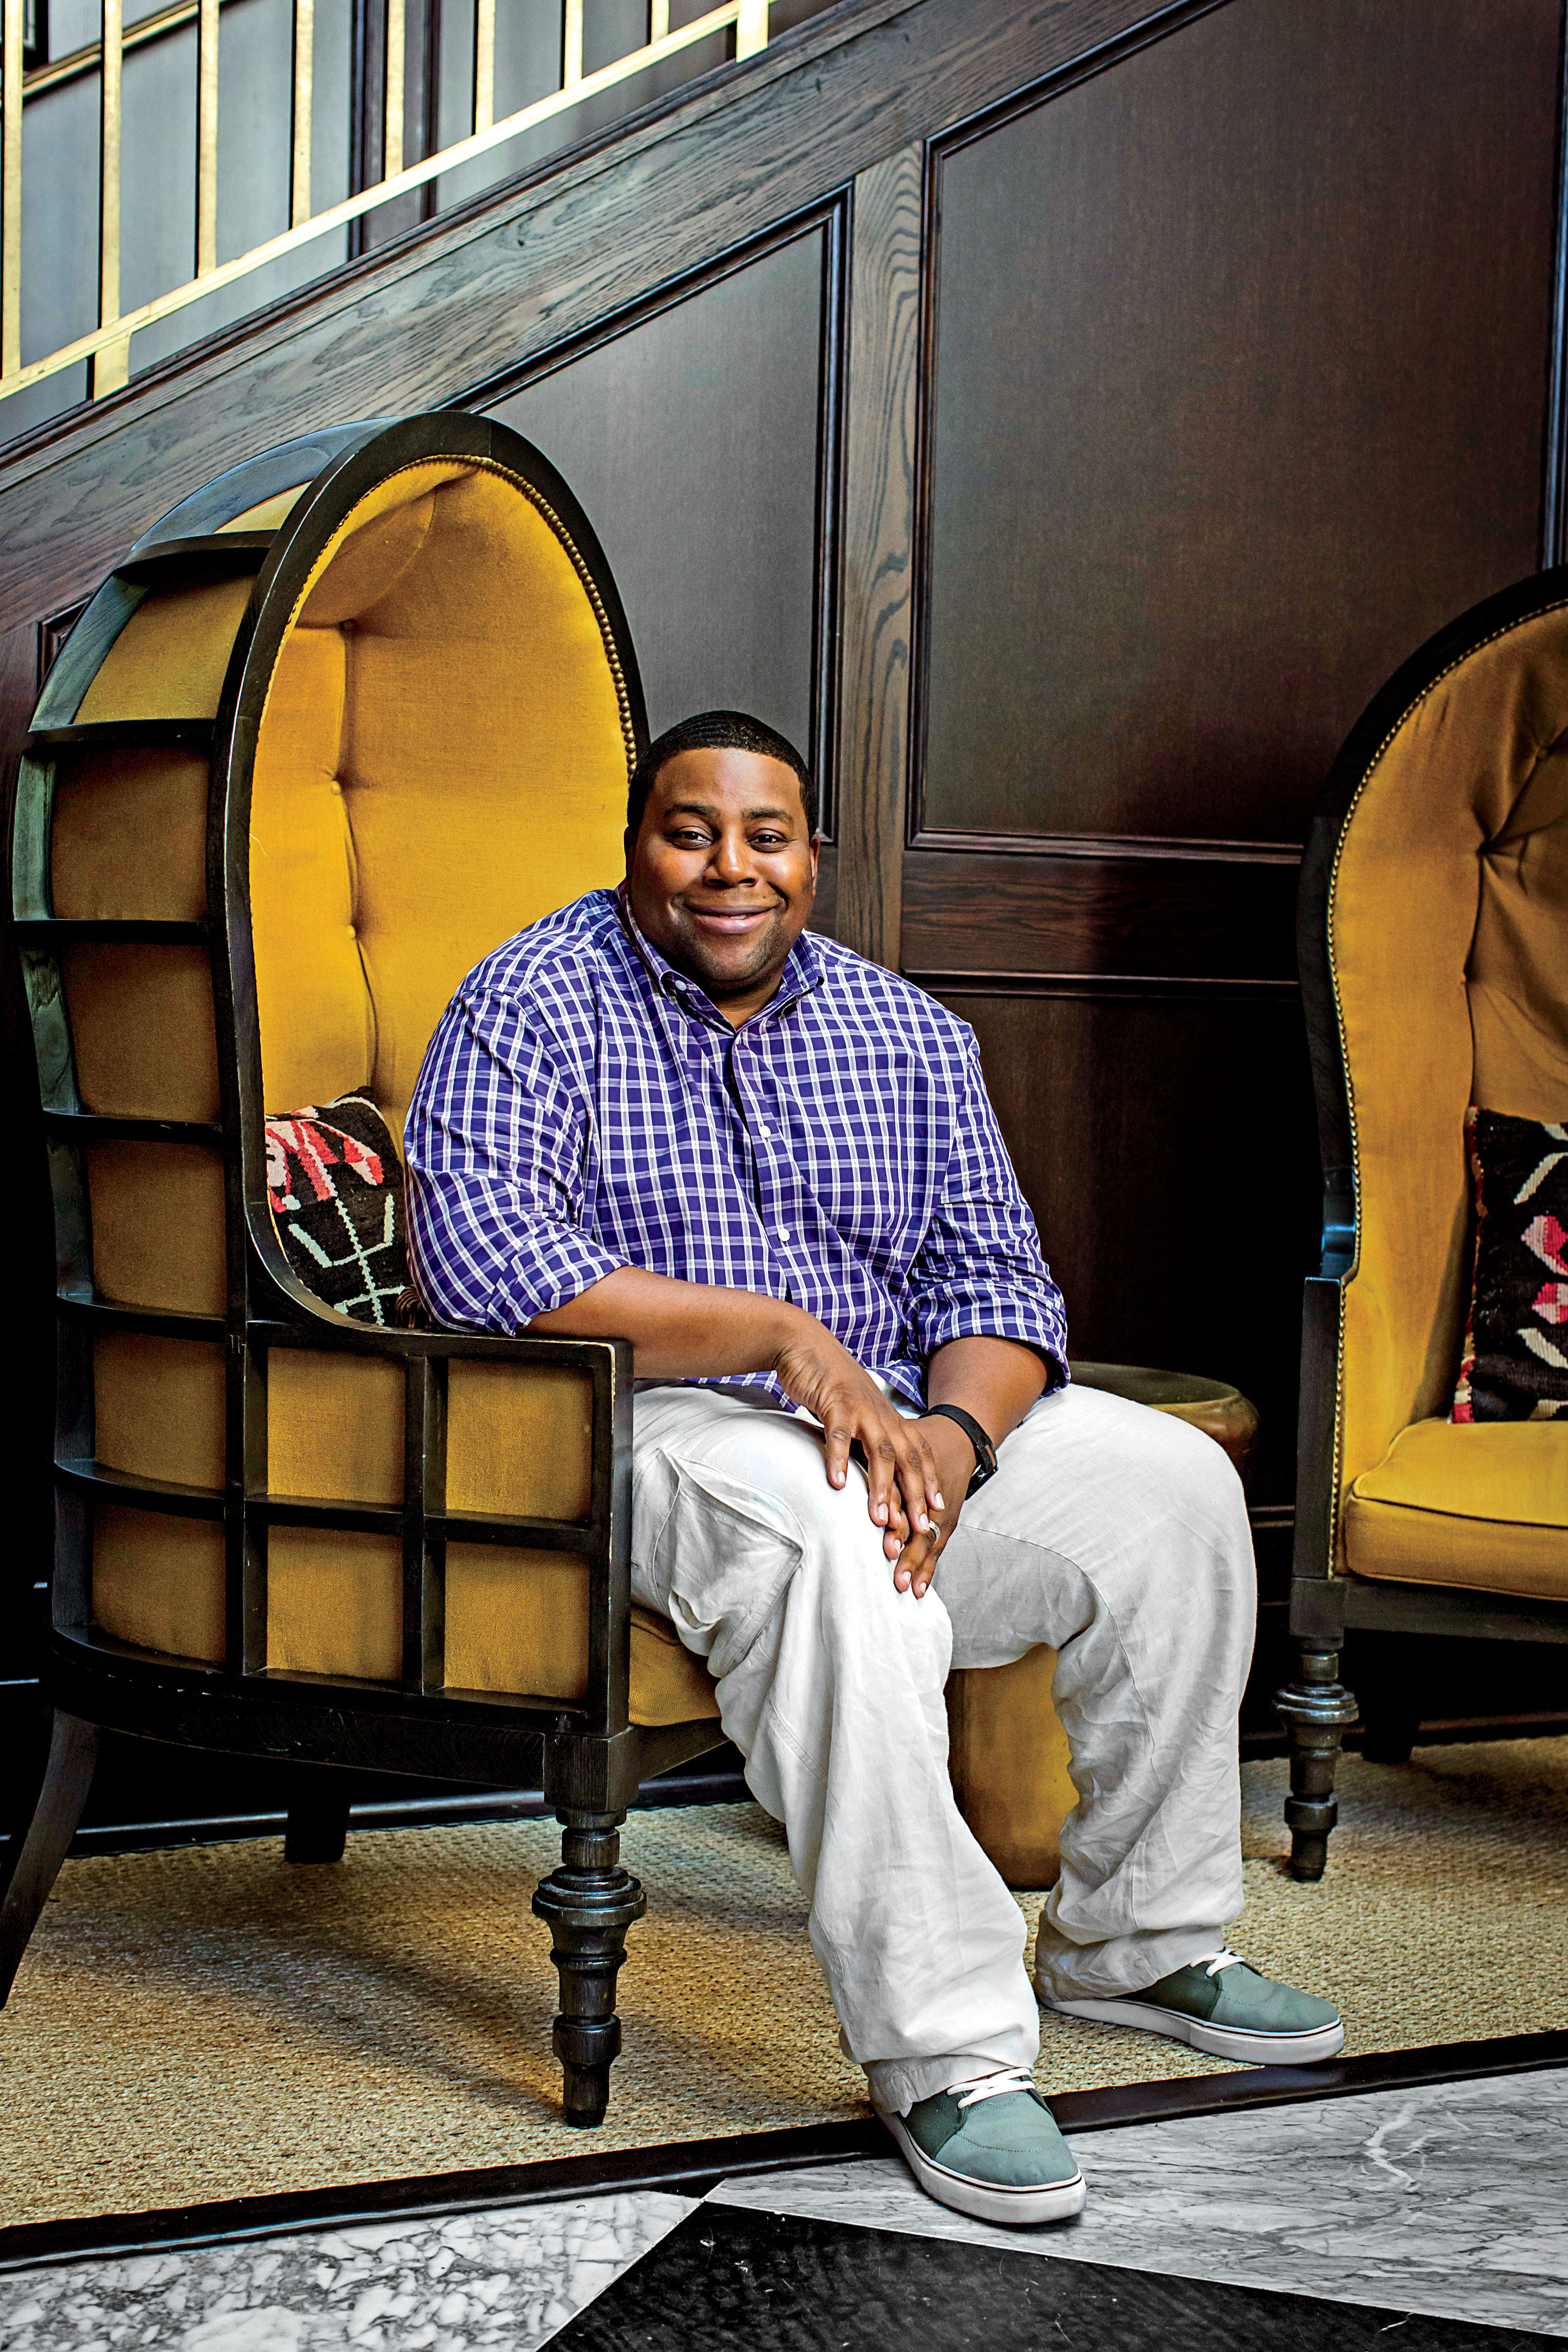 Catching Up with Kenan Thompson